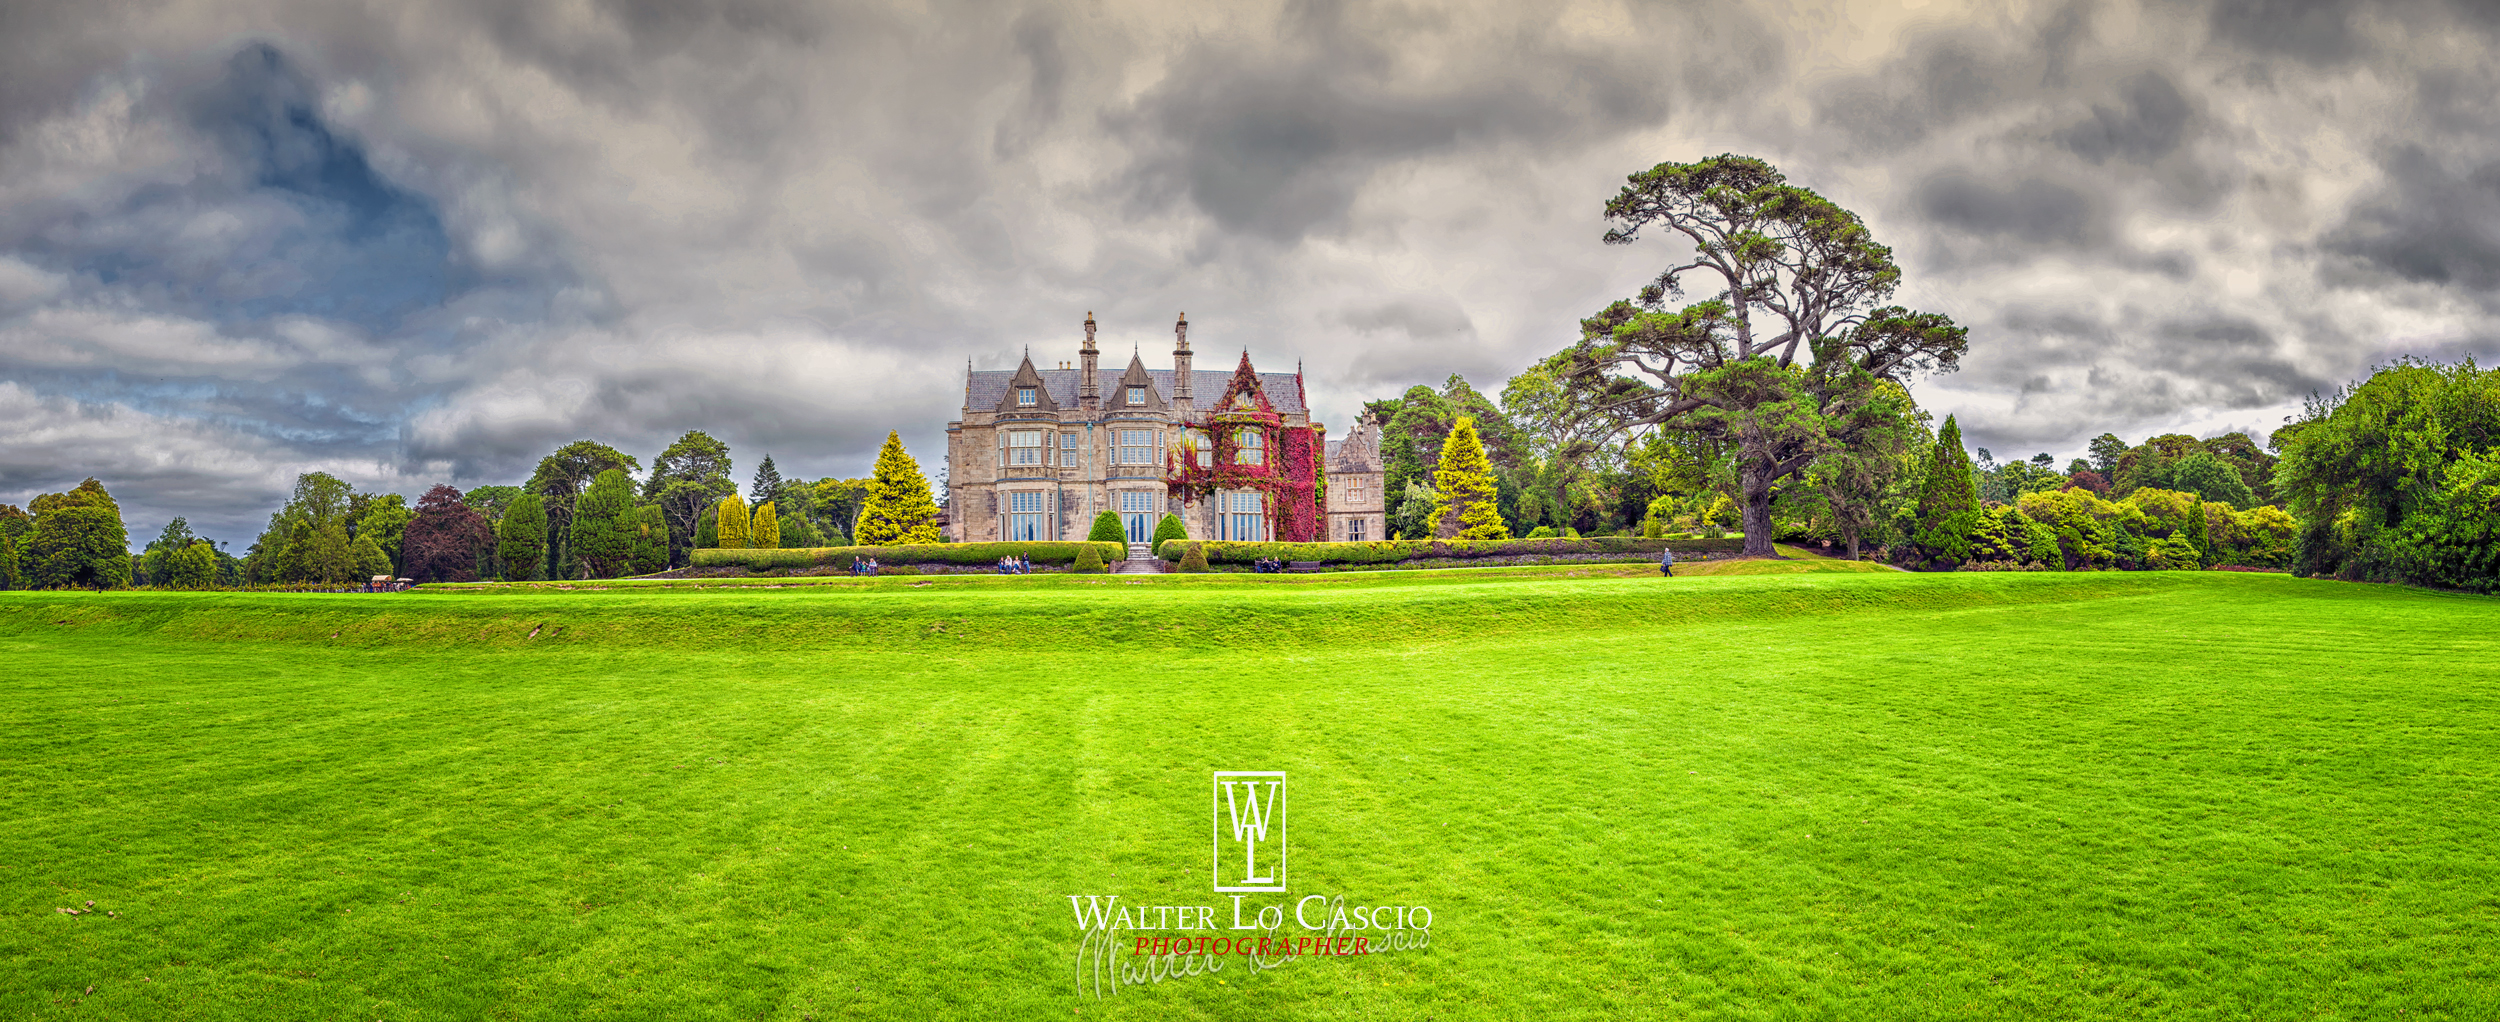 ireland-2015-killarney-muckross-house_21428383192_o.jpg